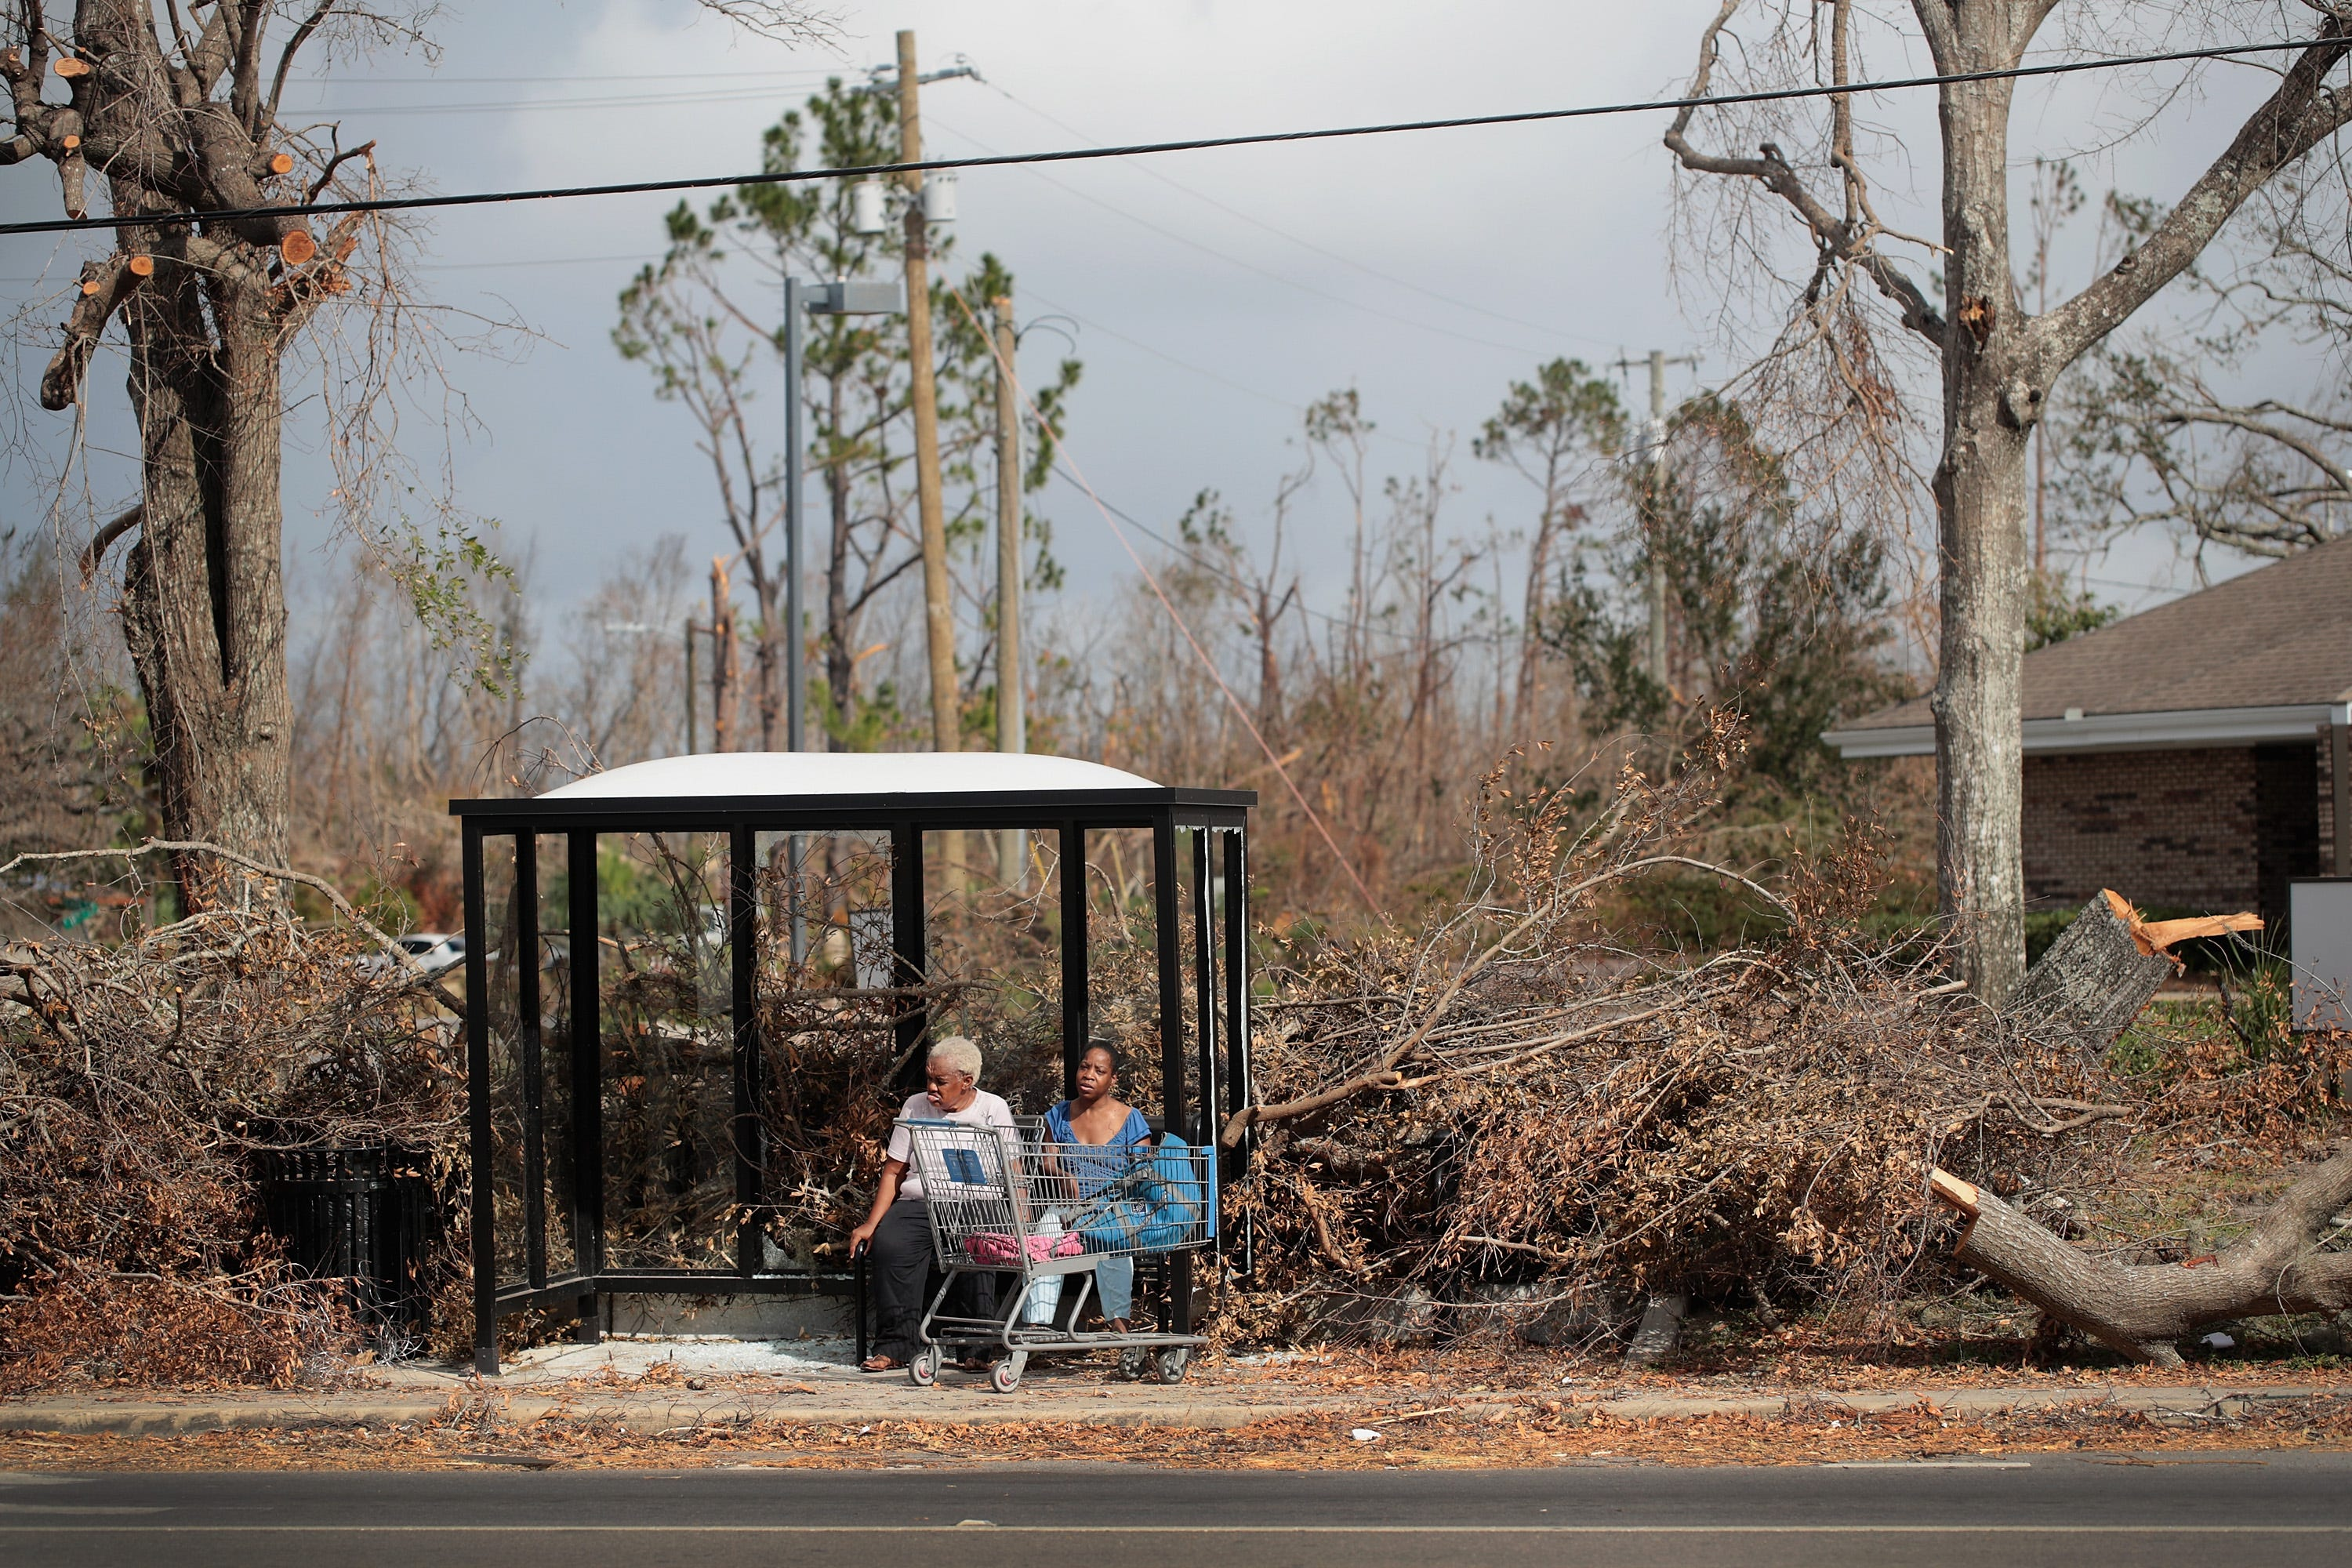 Mary Battles, left, and Shenike Bishop rest in a bus stop damaged by Hurricane Michael on Oct. 20, 2018 in Panama City, Florida. Hurricane Michael slammed into the Florida Panhandle on October 10, as a category 4 storm causing massive damage and claiming about 30 lives.